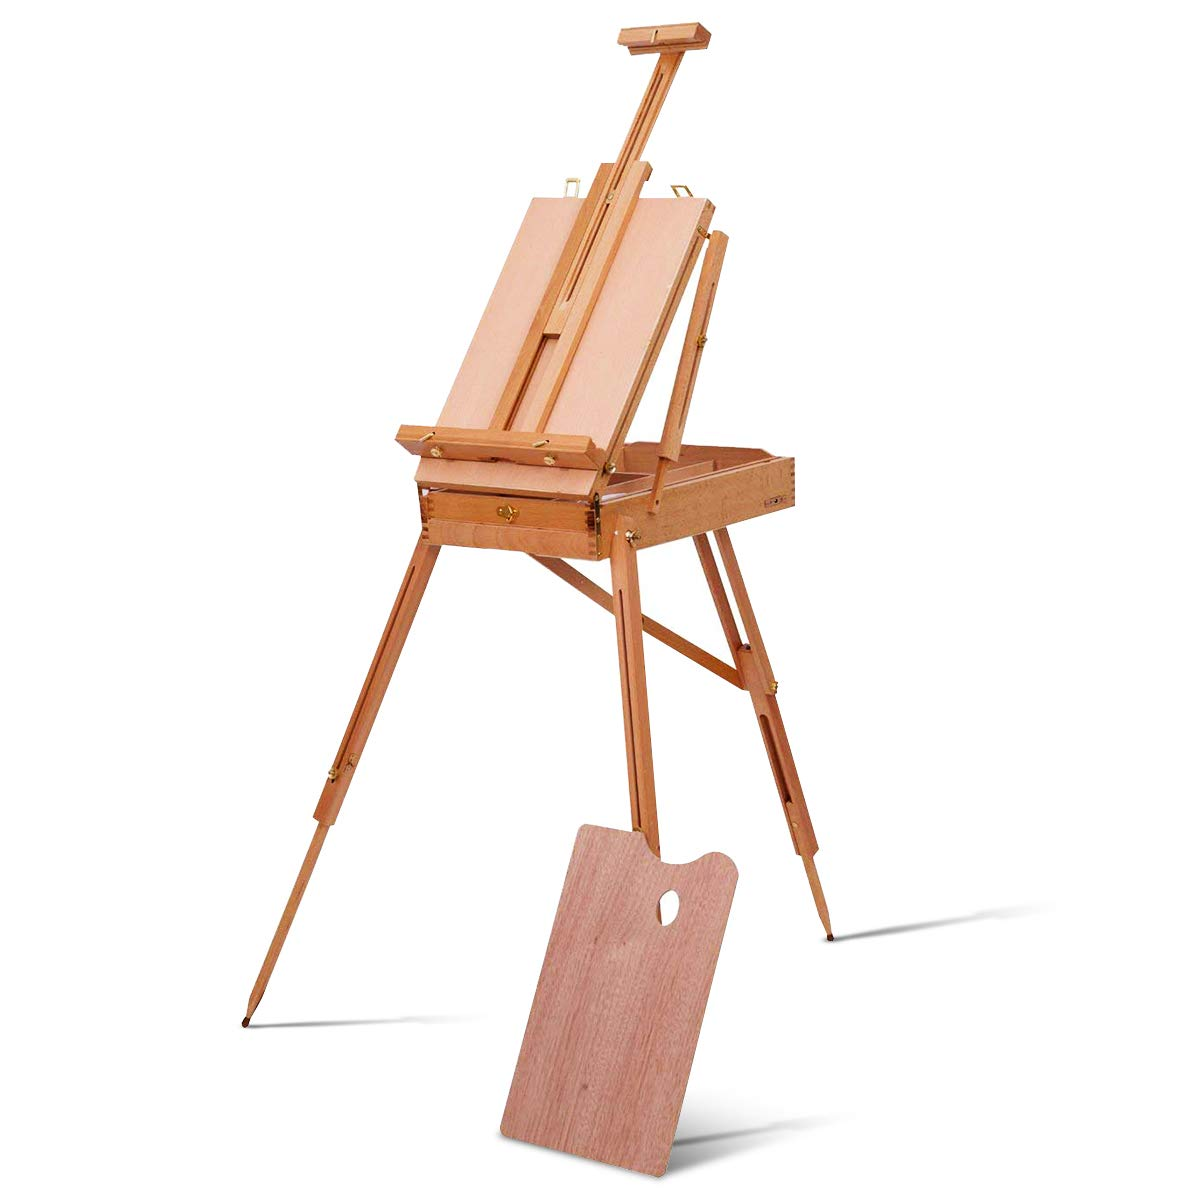 Tangkula Wooden French Easel Stand with Sketch Box, Drawer & Palette Foldable Folding Portable Easel Case with Shoulder Strap Solid Beech Wood Construction Art Easel AM0235TL